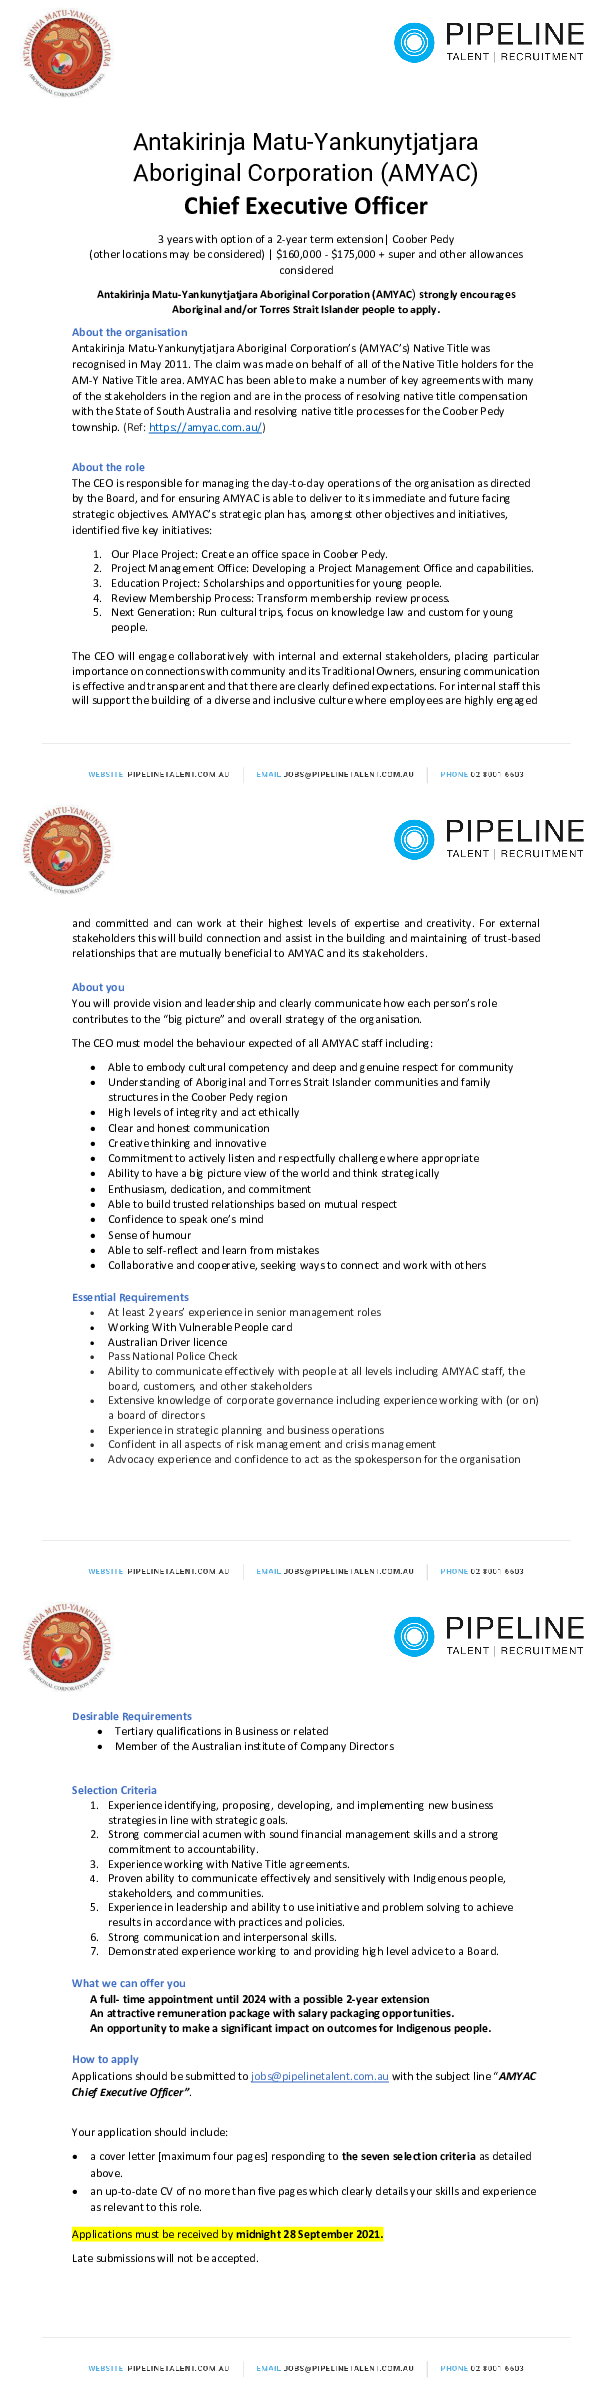 Pipeline Talent - Job Ad - AMYAC Chief Executive Officer_final_V2